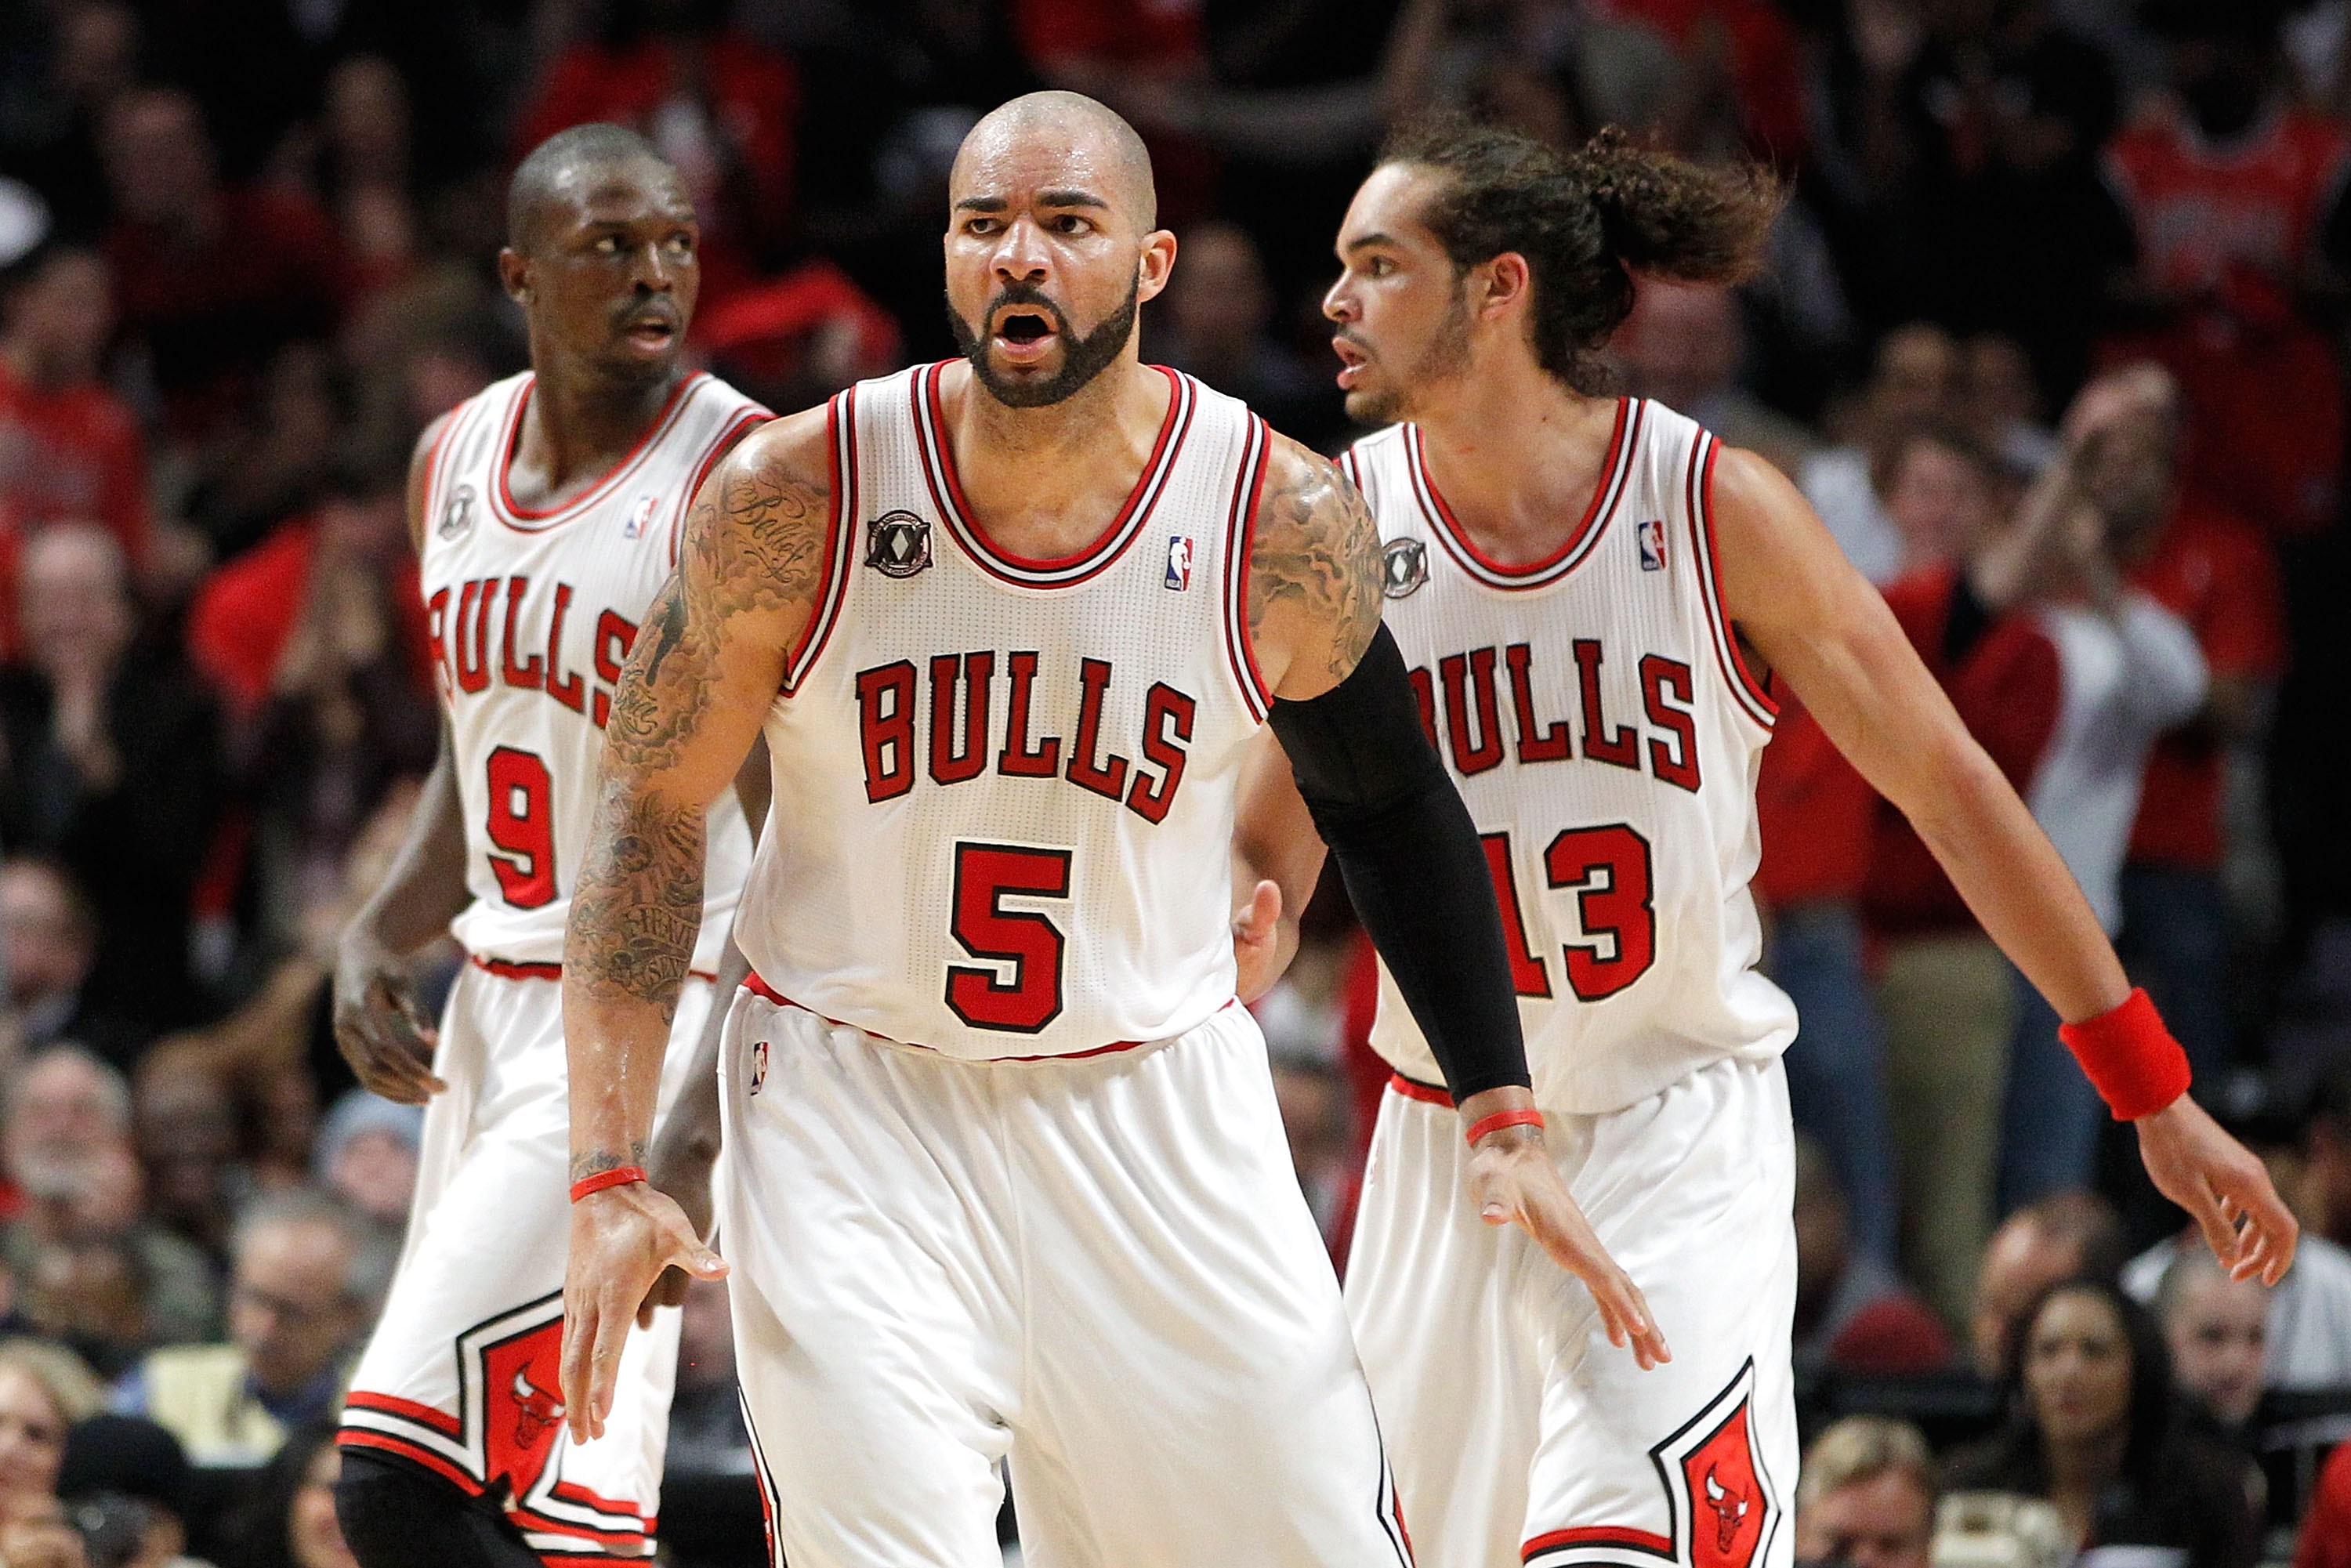 CHICAGO, IL - MAY 15:  (L-R) Luol Deng #9, Carlos Boozer #5 and Joakim Noah #13 of the Chicago Bulls get back on defense against the Miami Heat in Game One of the Eastern Conference Finals during the 2011 NBA Playoffs on May 15, 2011 at the United Center